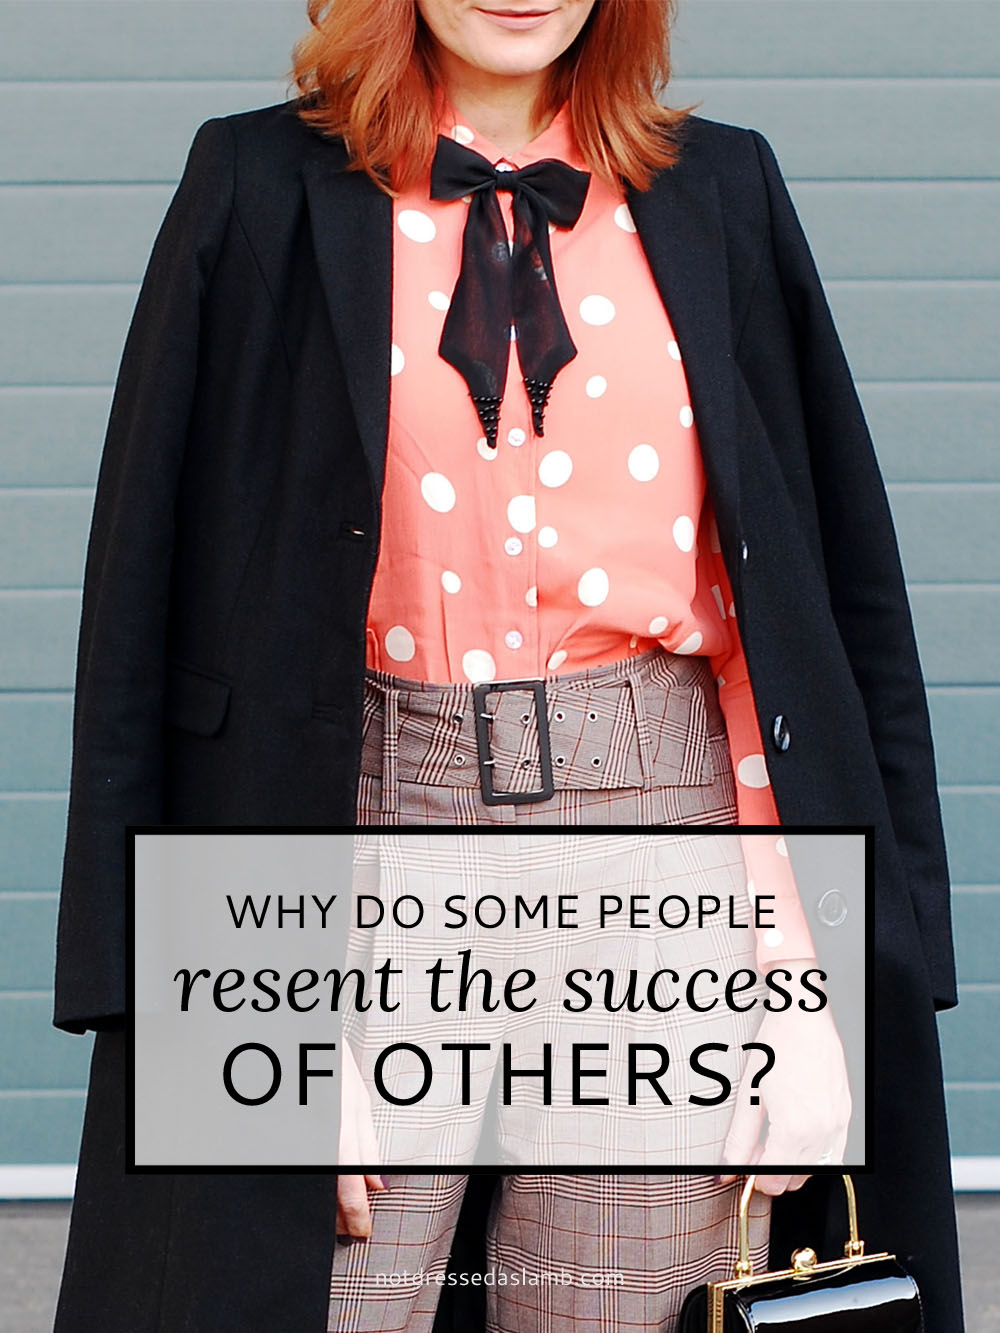 Why Do Some People Resent the Success of Others?